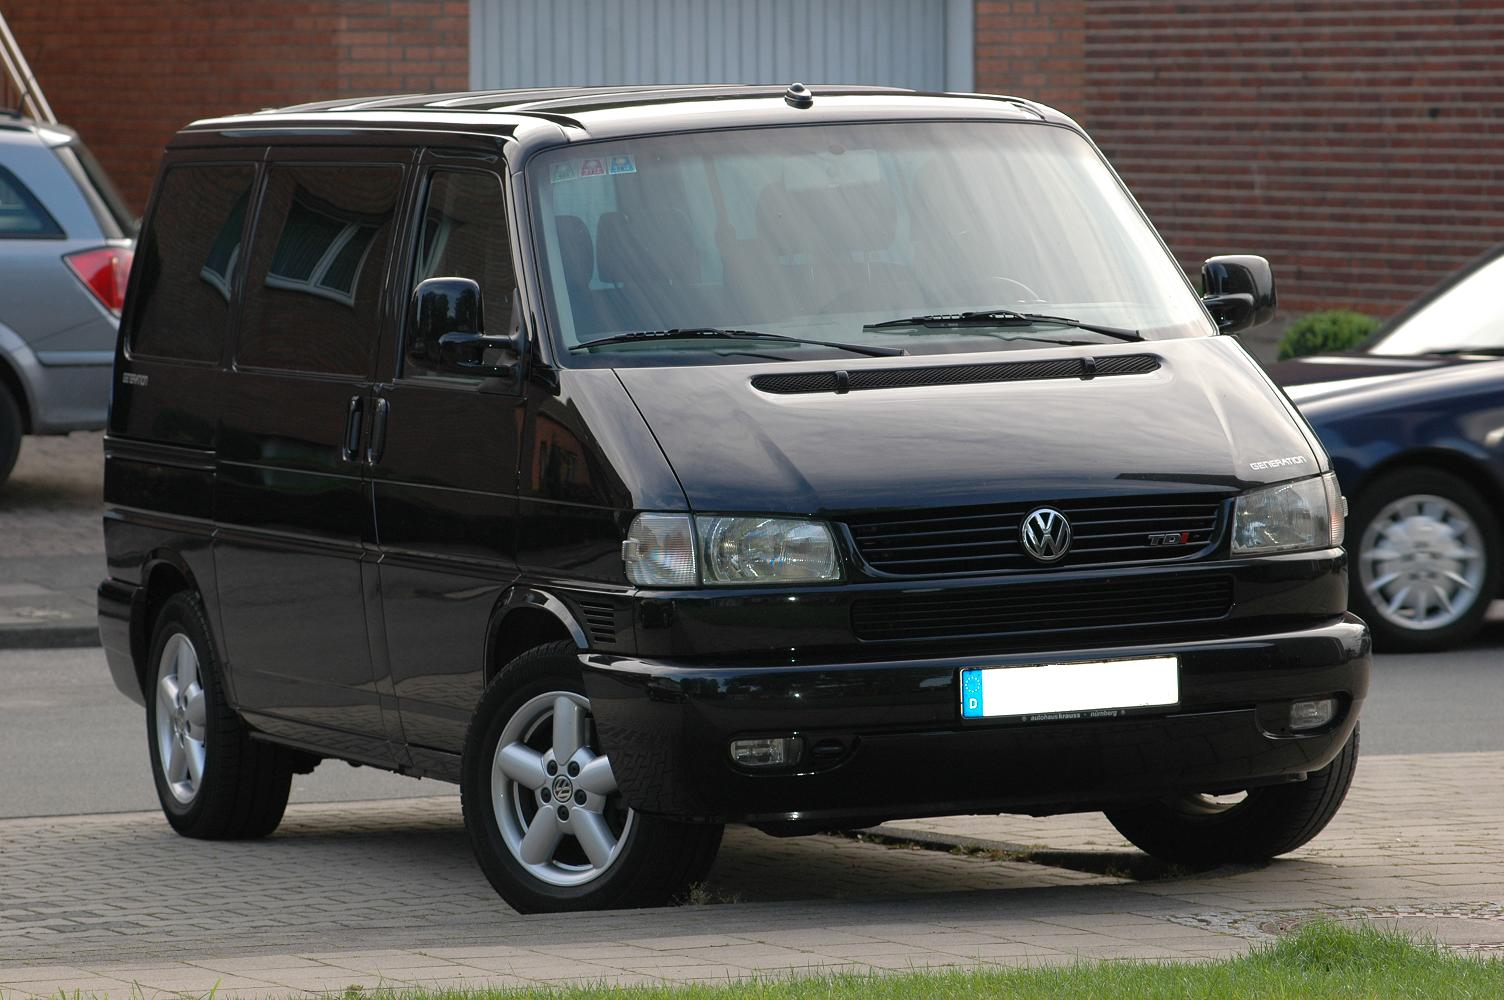 vw t4 multivan technical details history photos on better parts ltd. Black Bedroom Furniture Sets. Home Design Ideas